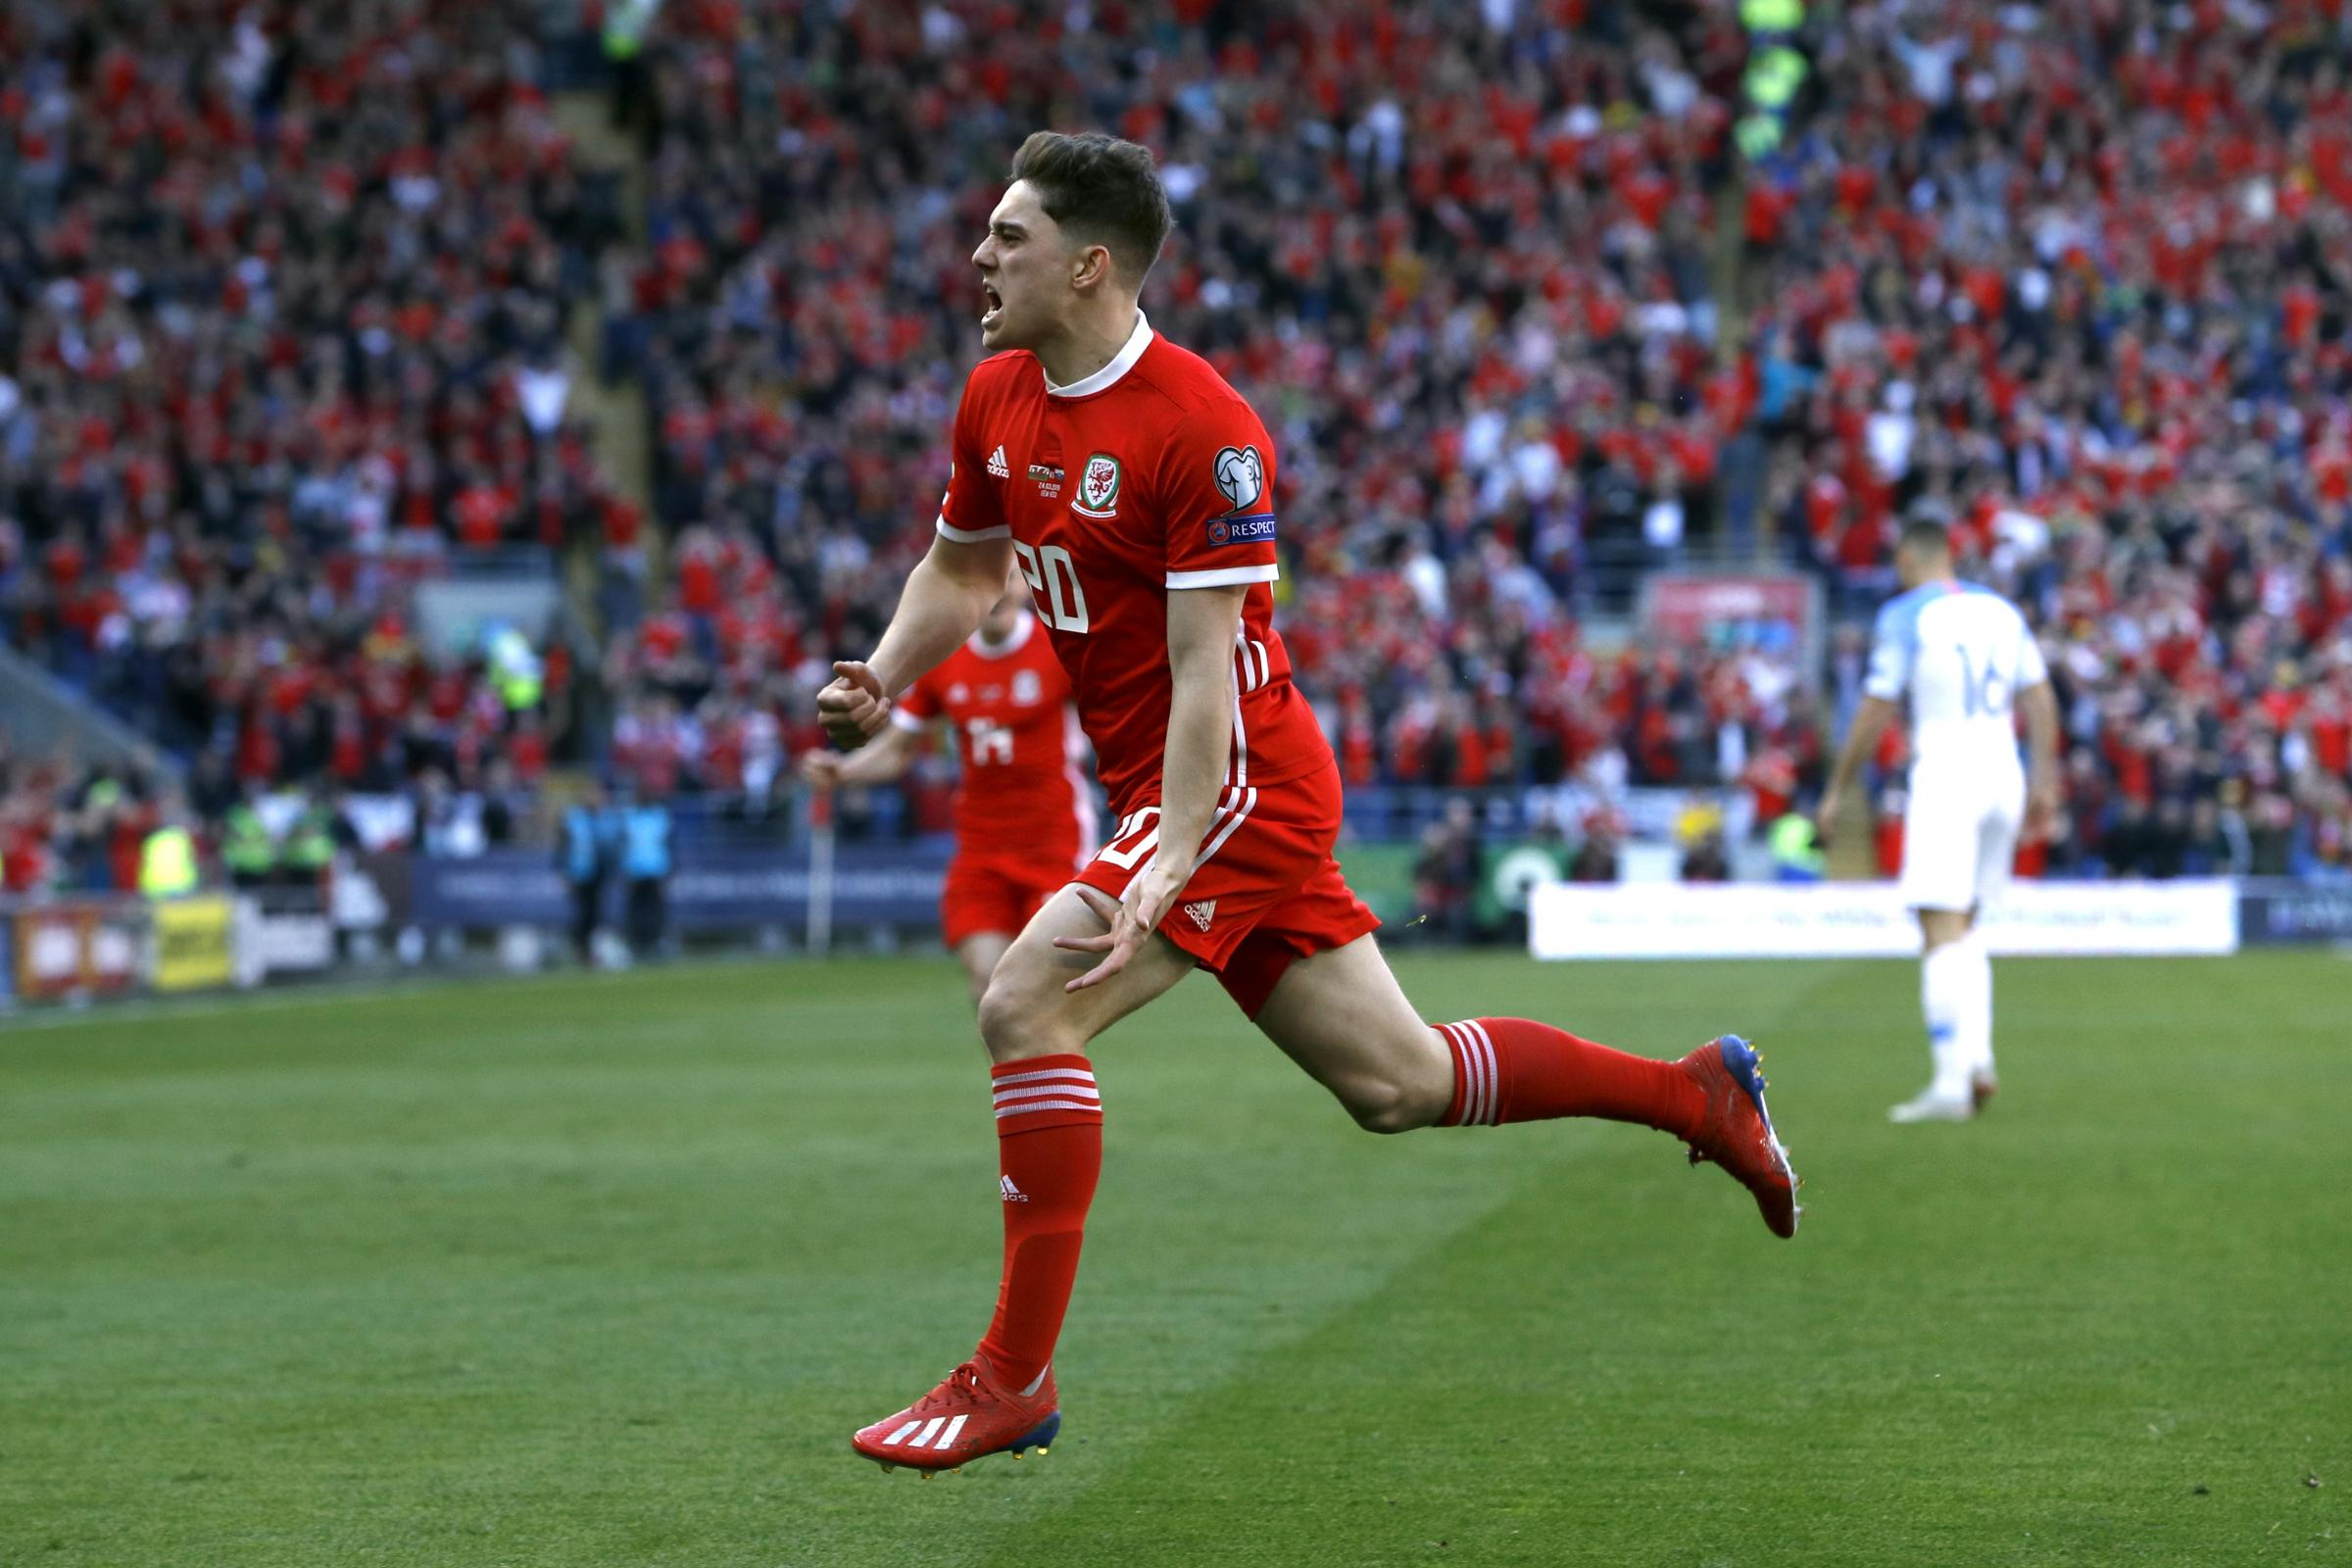 Daniel James scored Wales' winner in the Euro 2020 qualifier against Slovakia on his first competitive start for his country